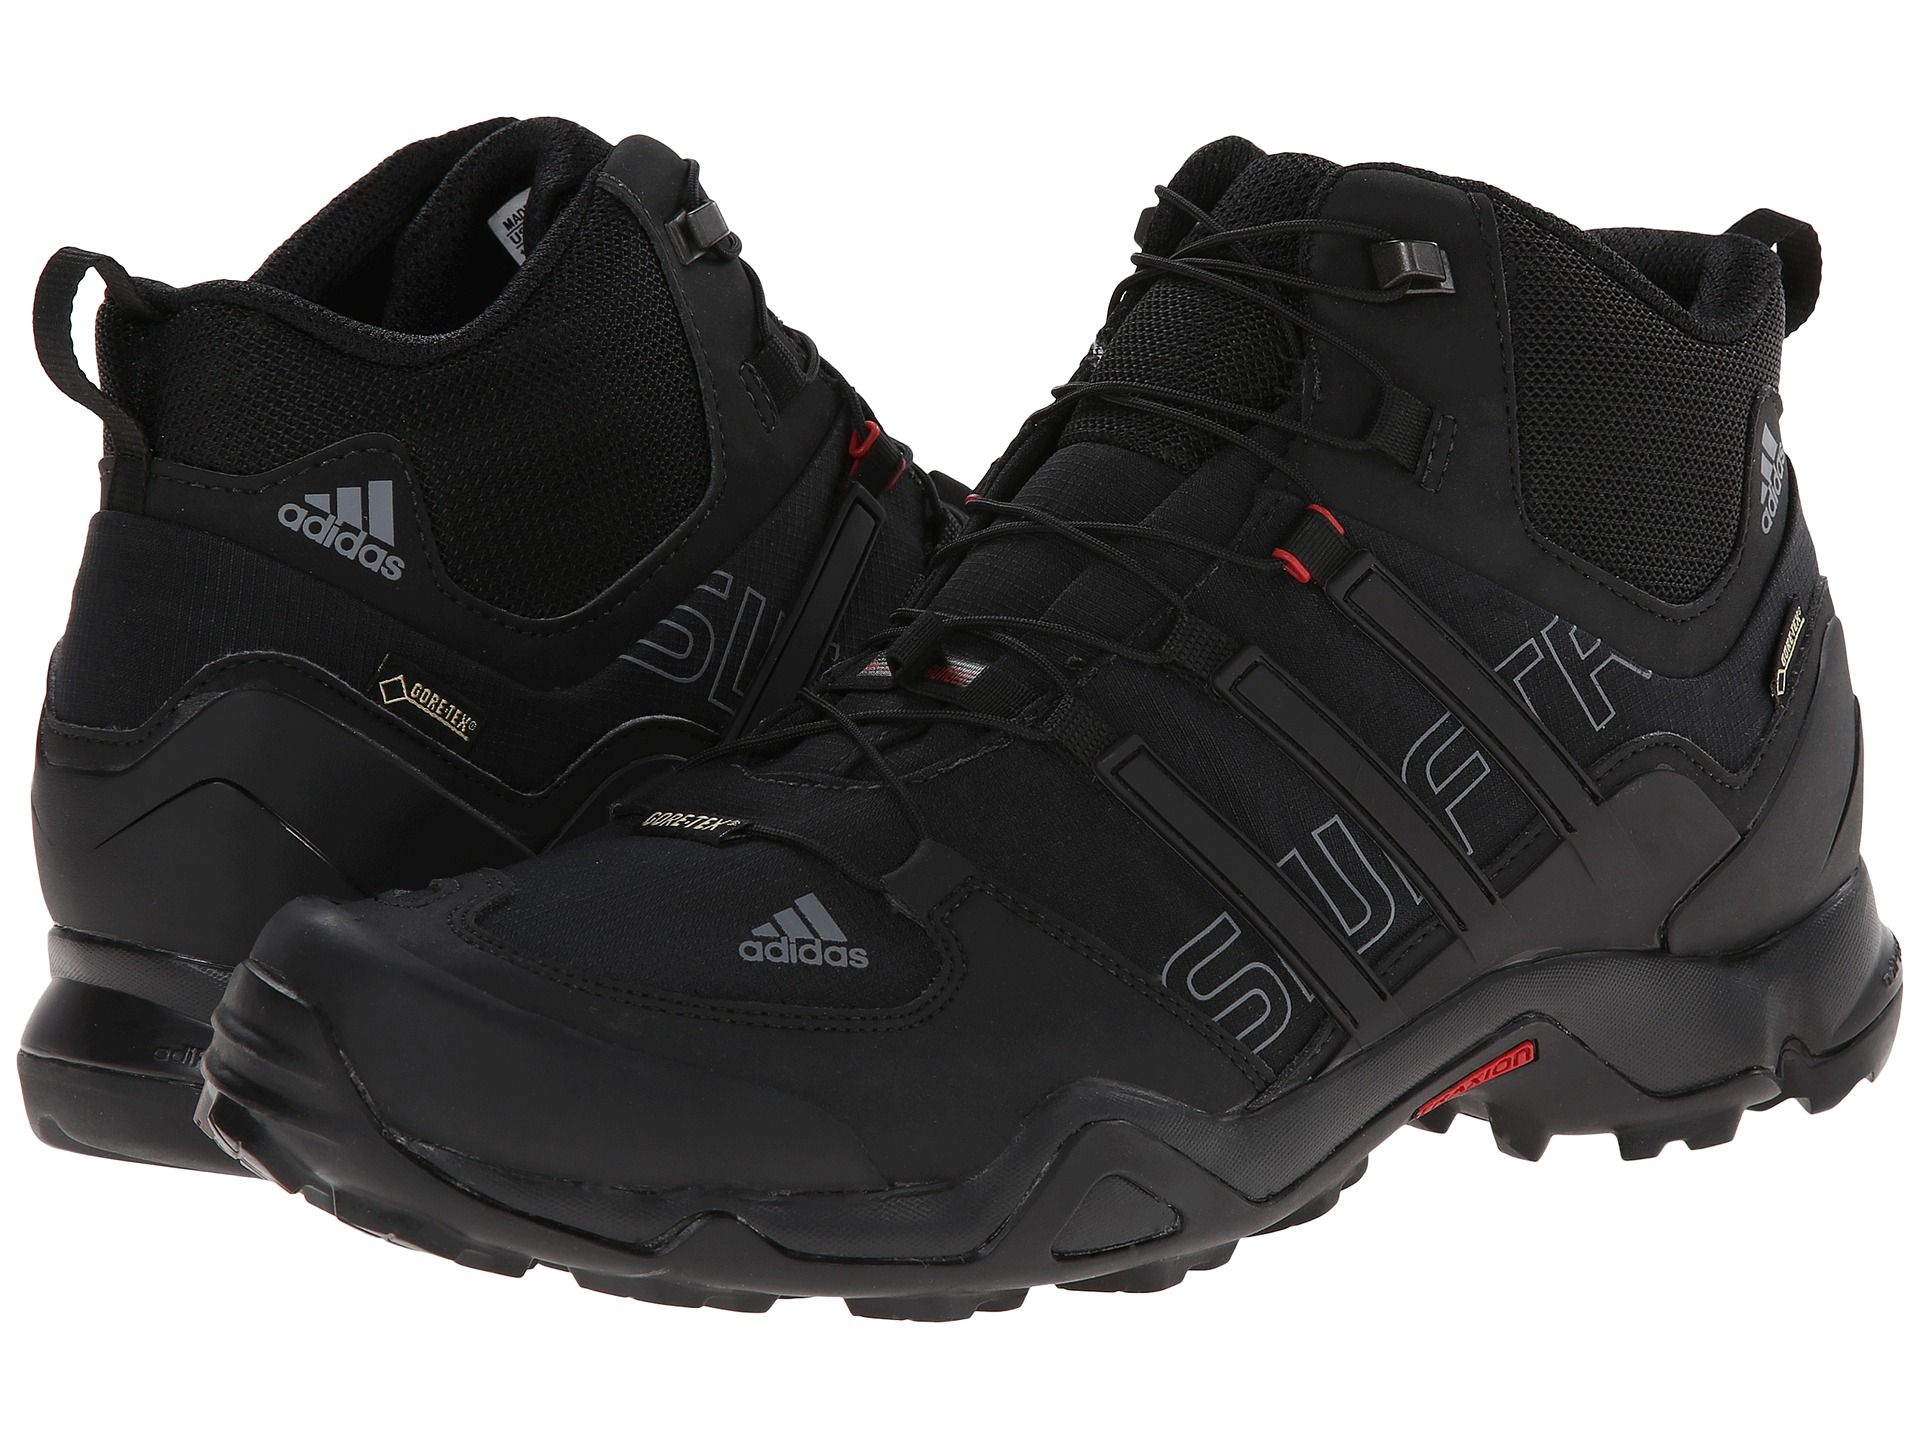 59458c246d59e adidas Outdoor Terrex Swift R Mid GTX® Black University Red - Zappos ...